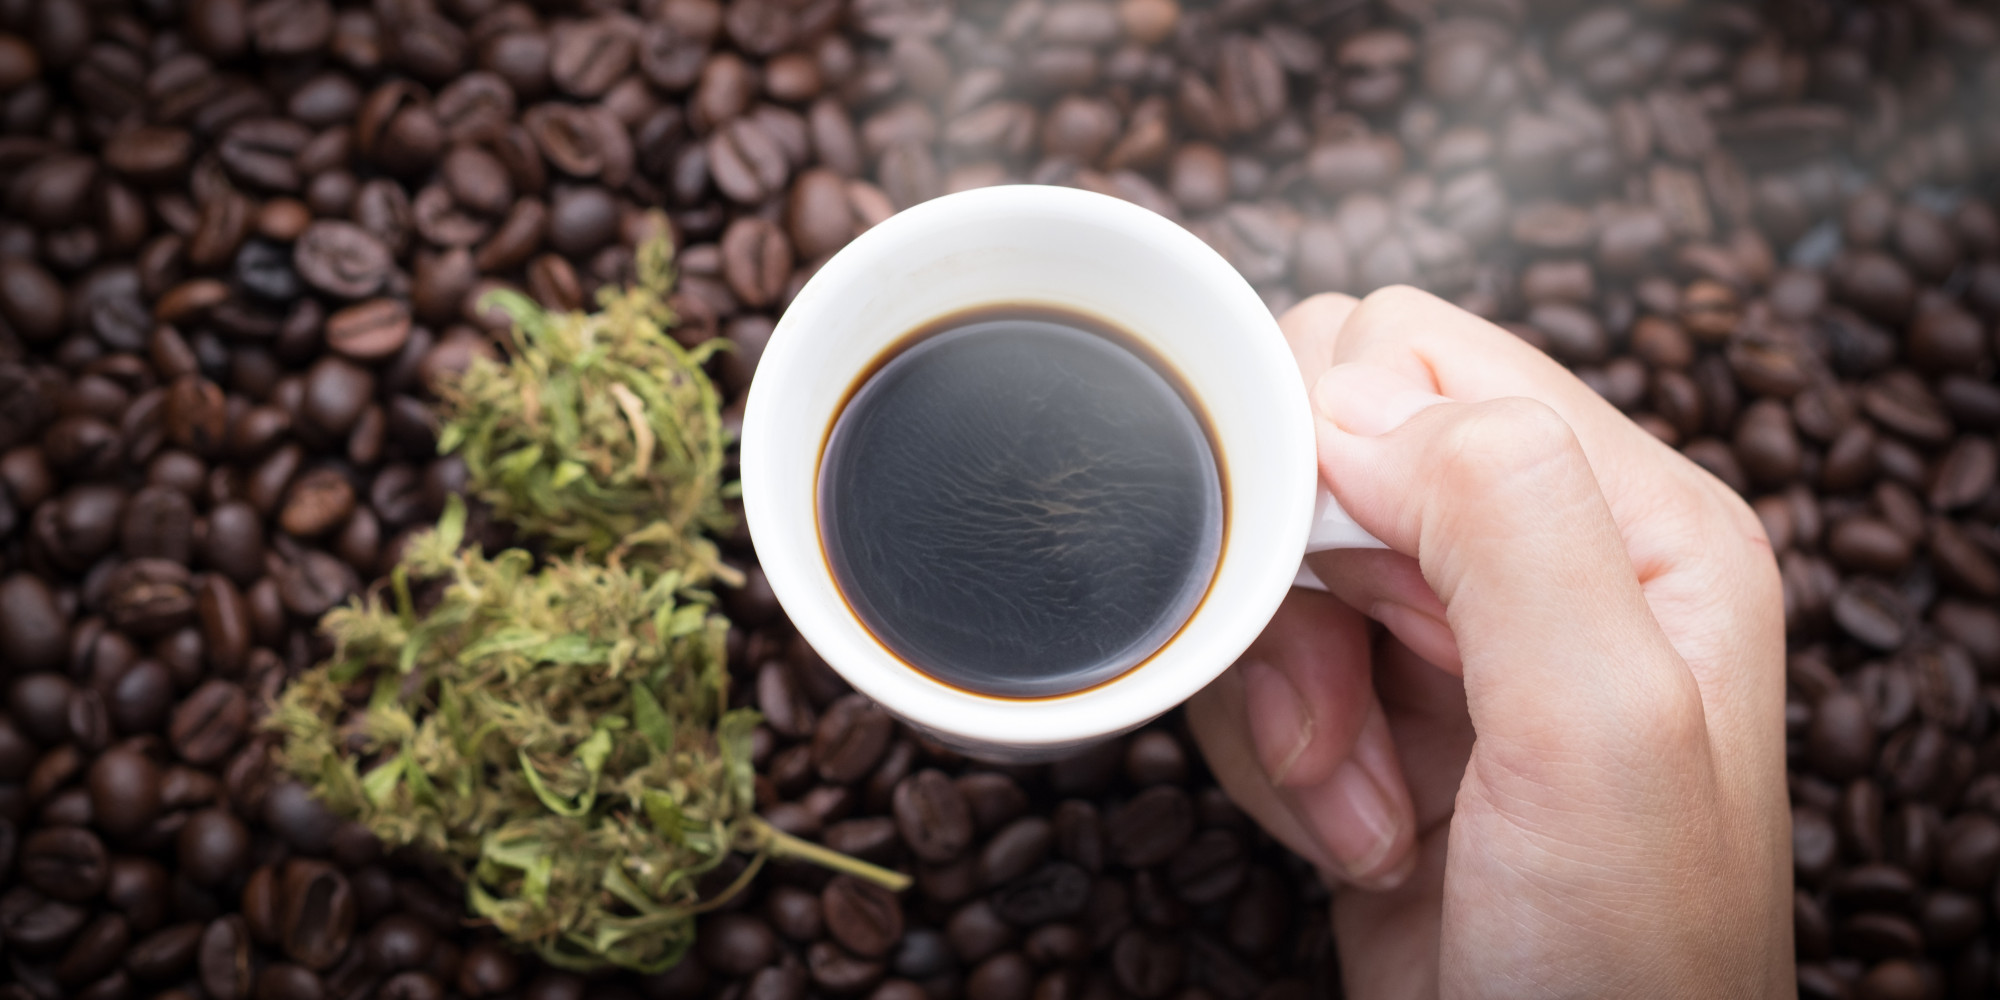 Coffee cup you can smoke out of - Coffee Cup You Can Smoke Weed Out Of Photo Credit Download